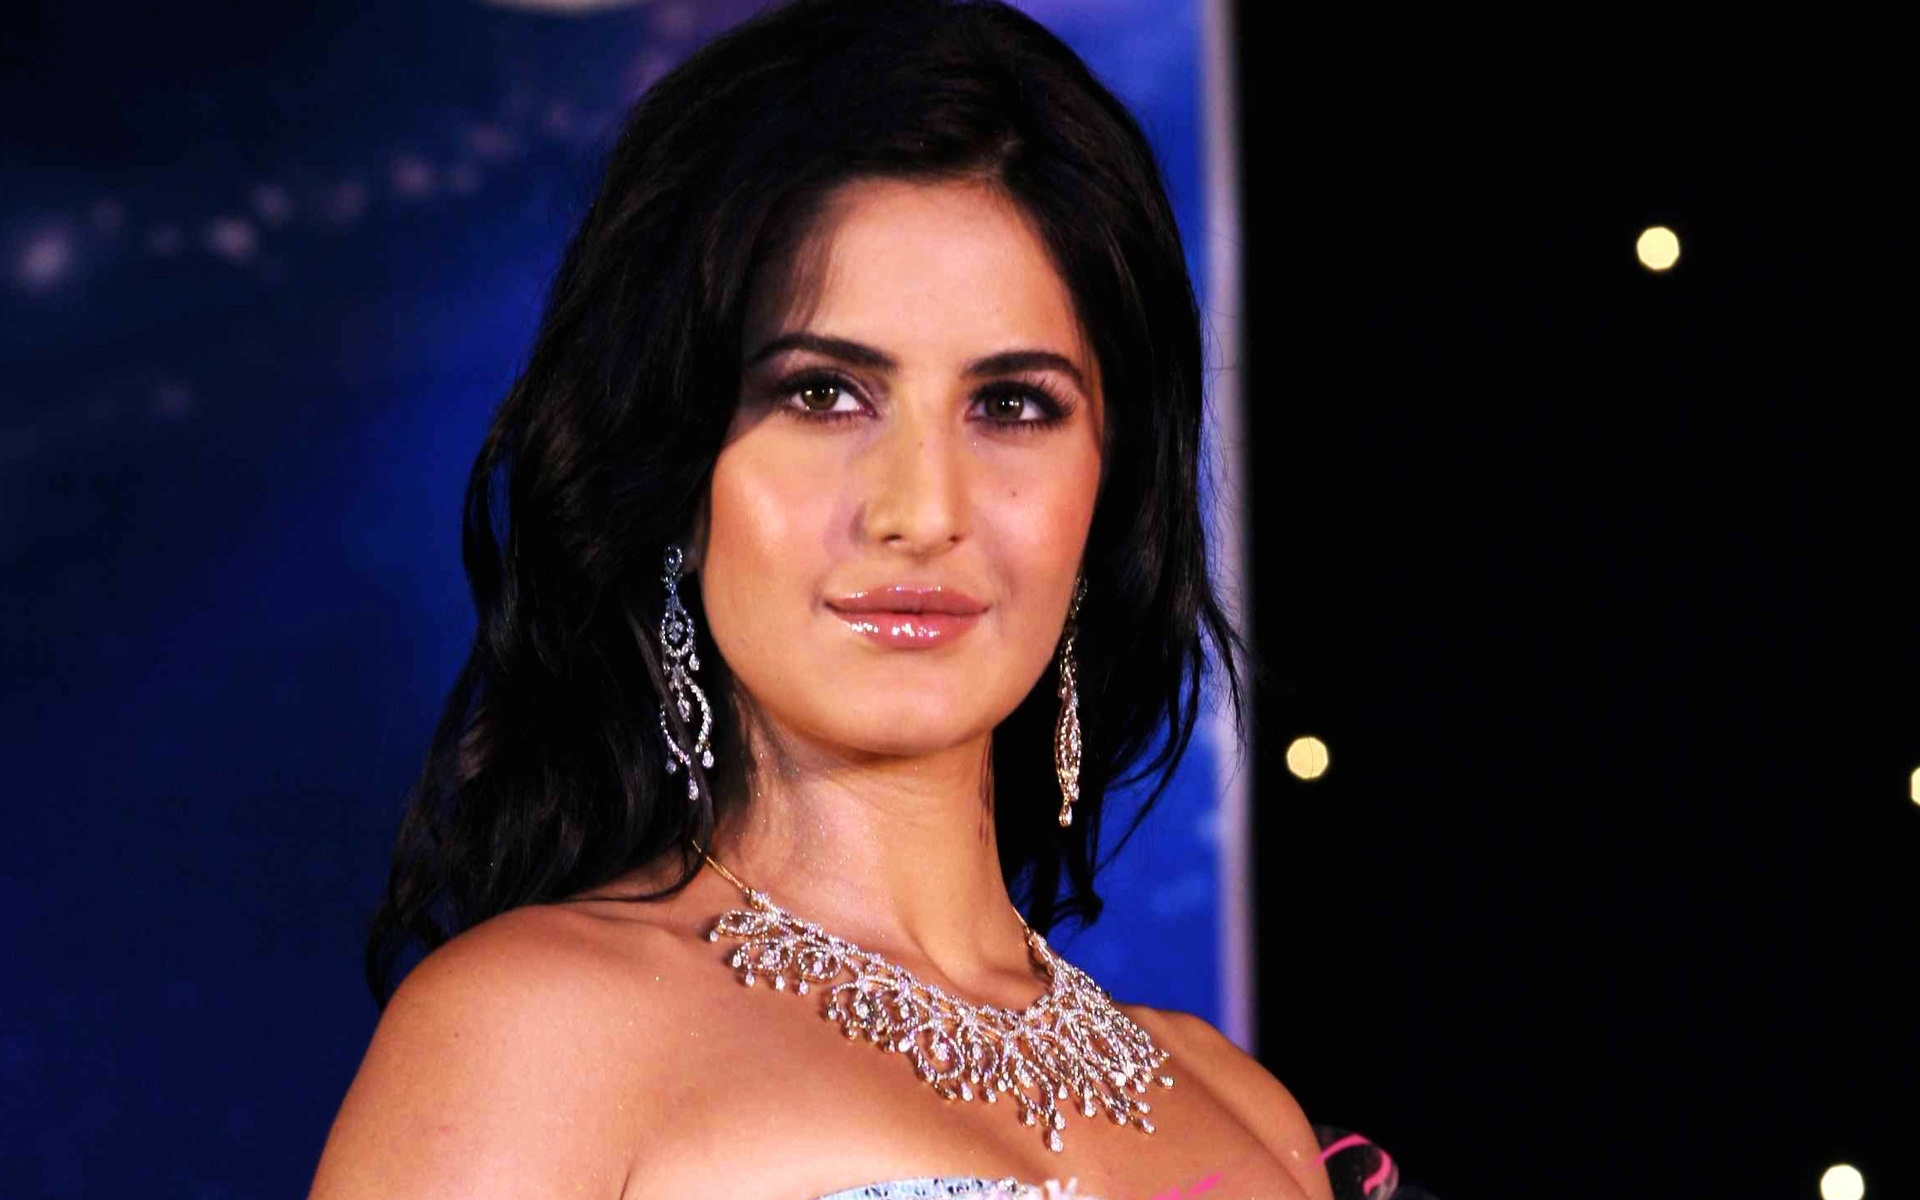 indian actress katrina kaif wallpapers in jpg format for free download